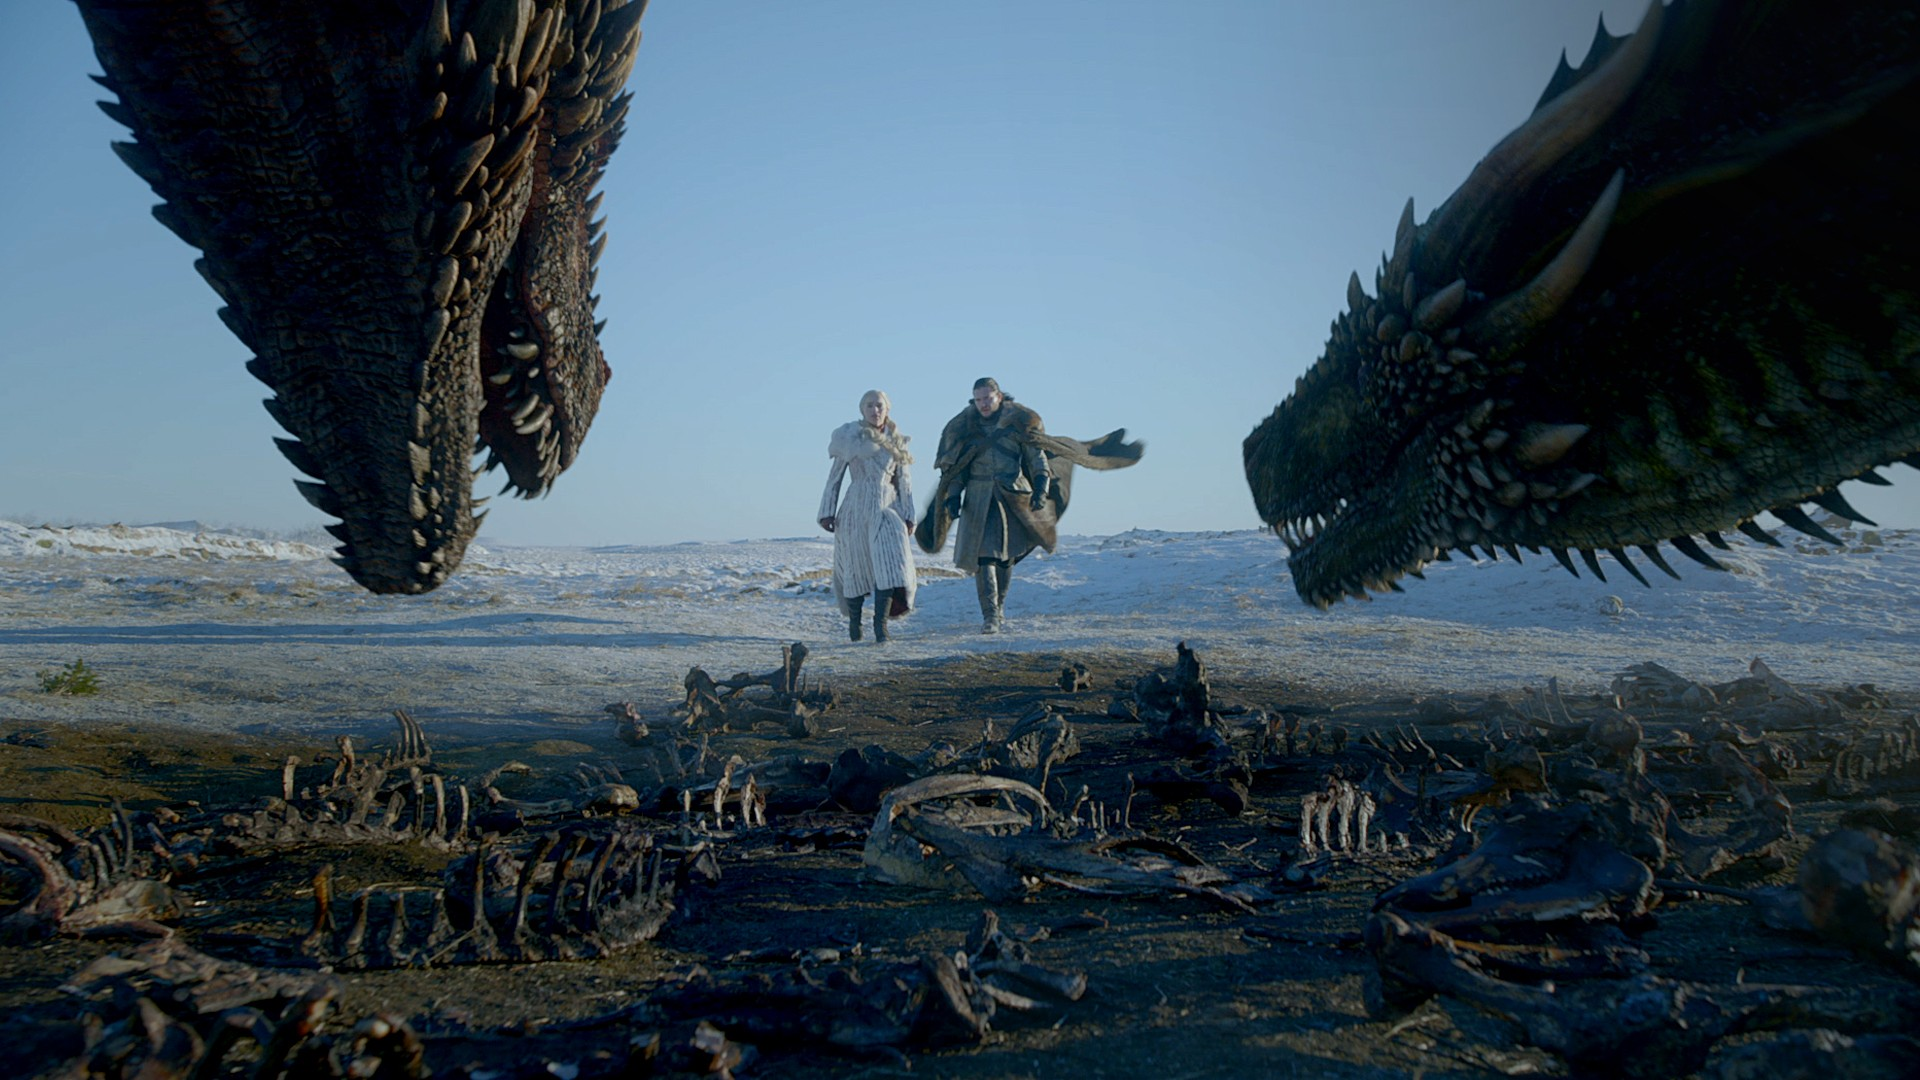 Trailer da oitava temporada de 'Game of Thrones' (Foto: Divulgação/HBO)